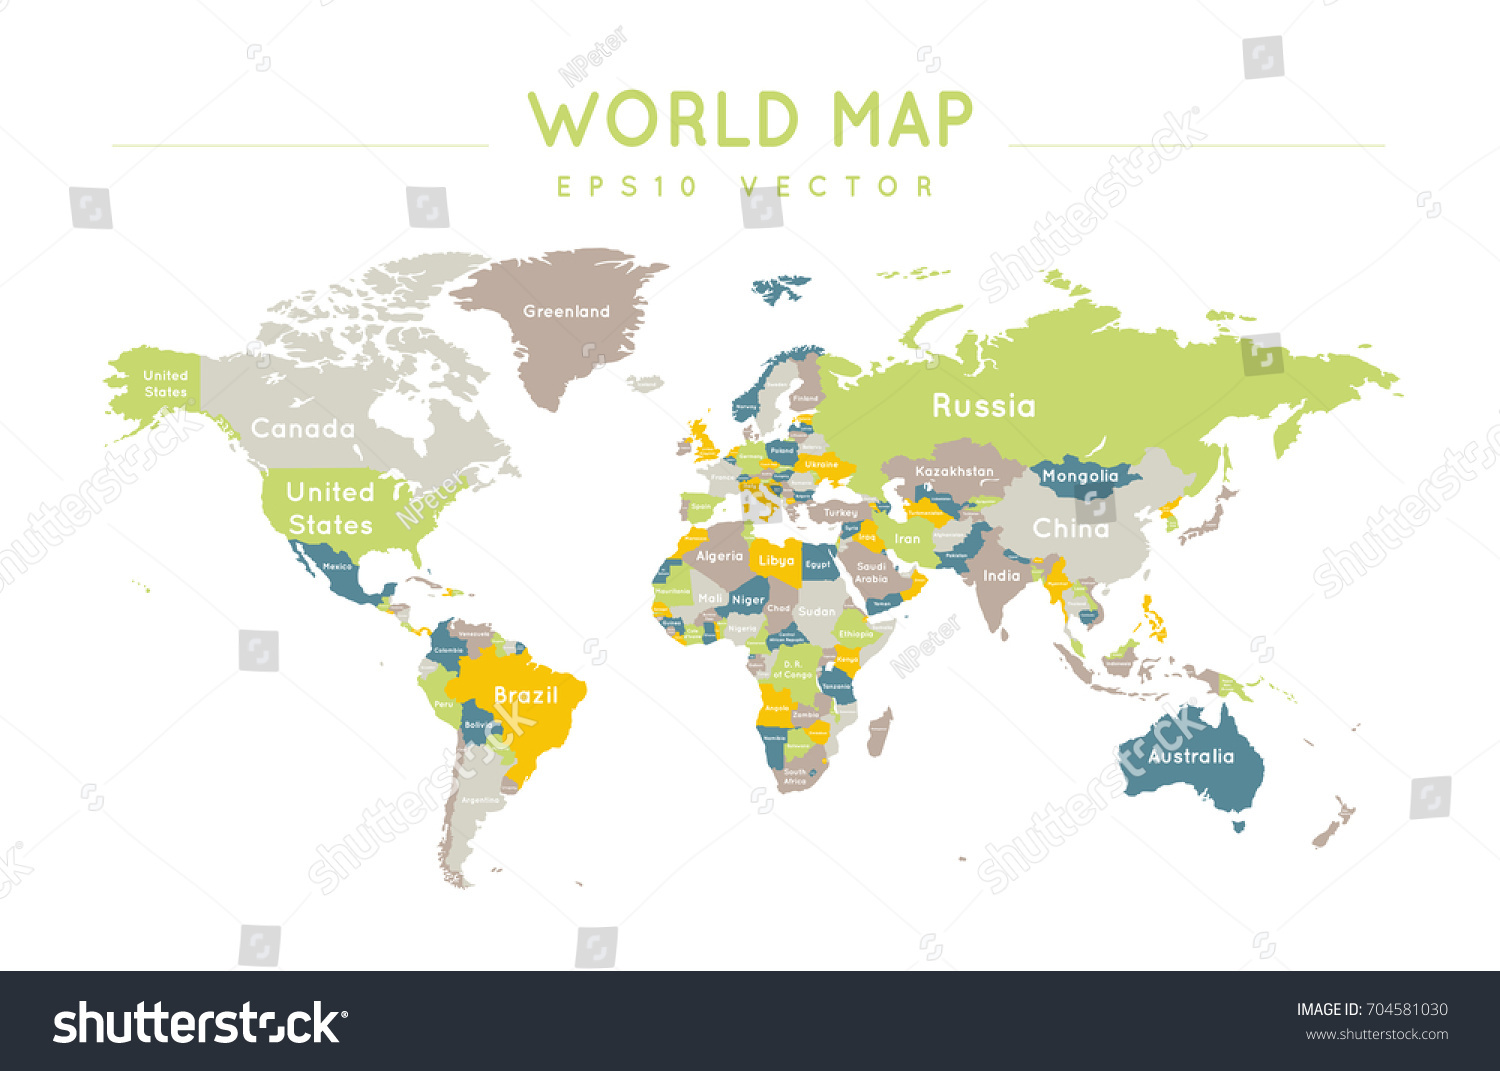 Colorful political world map name borders stock vector 704581030 colorful political world map with the name and borders of the countries gumiabroncs Images